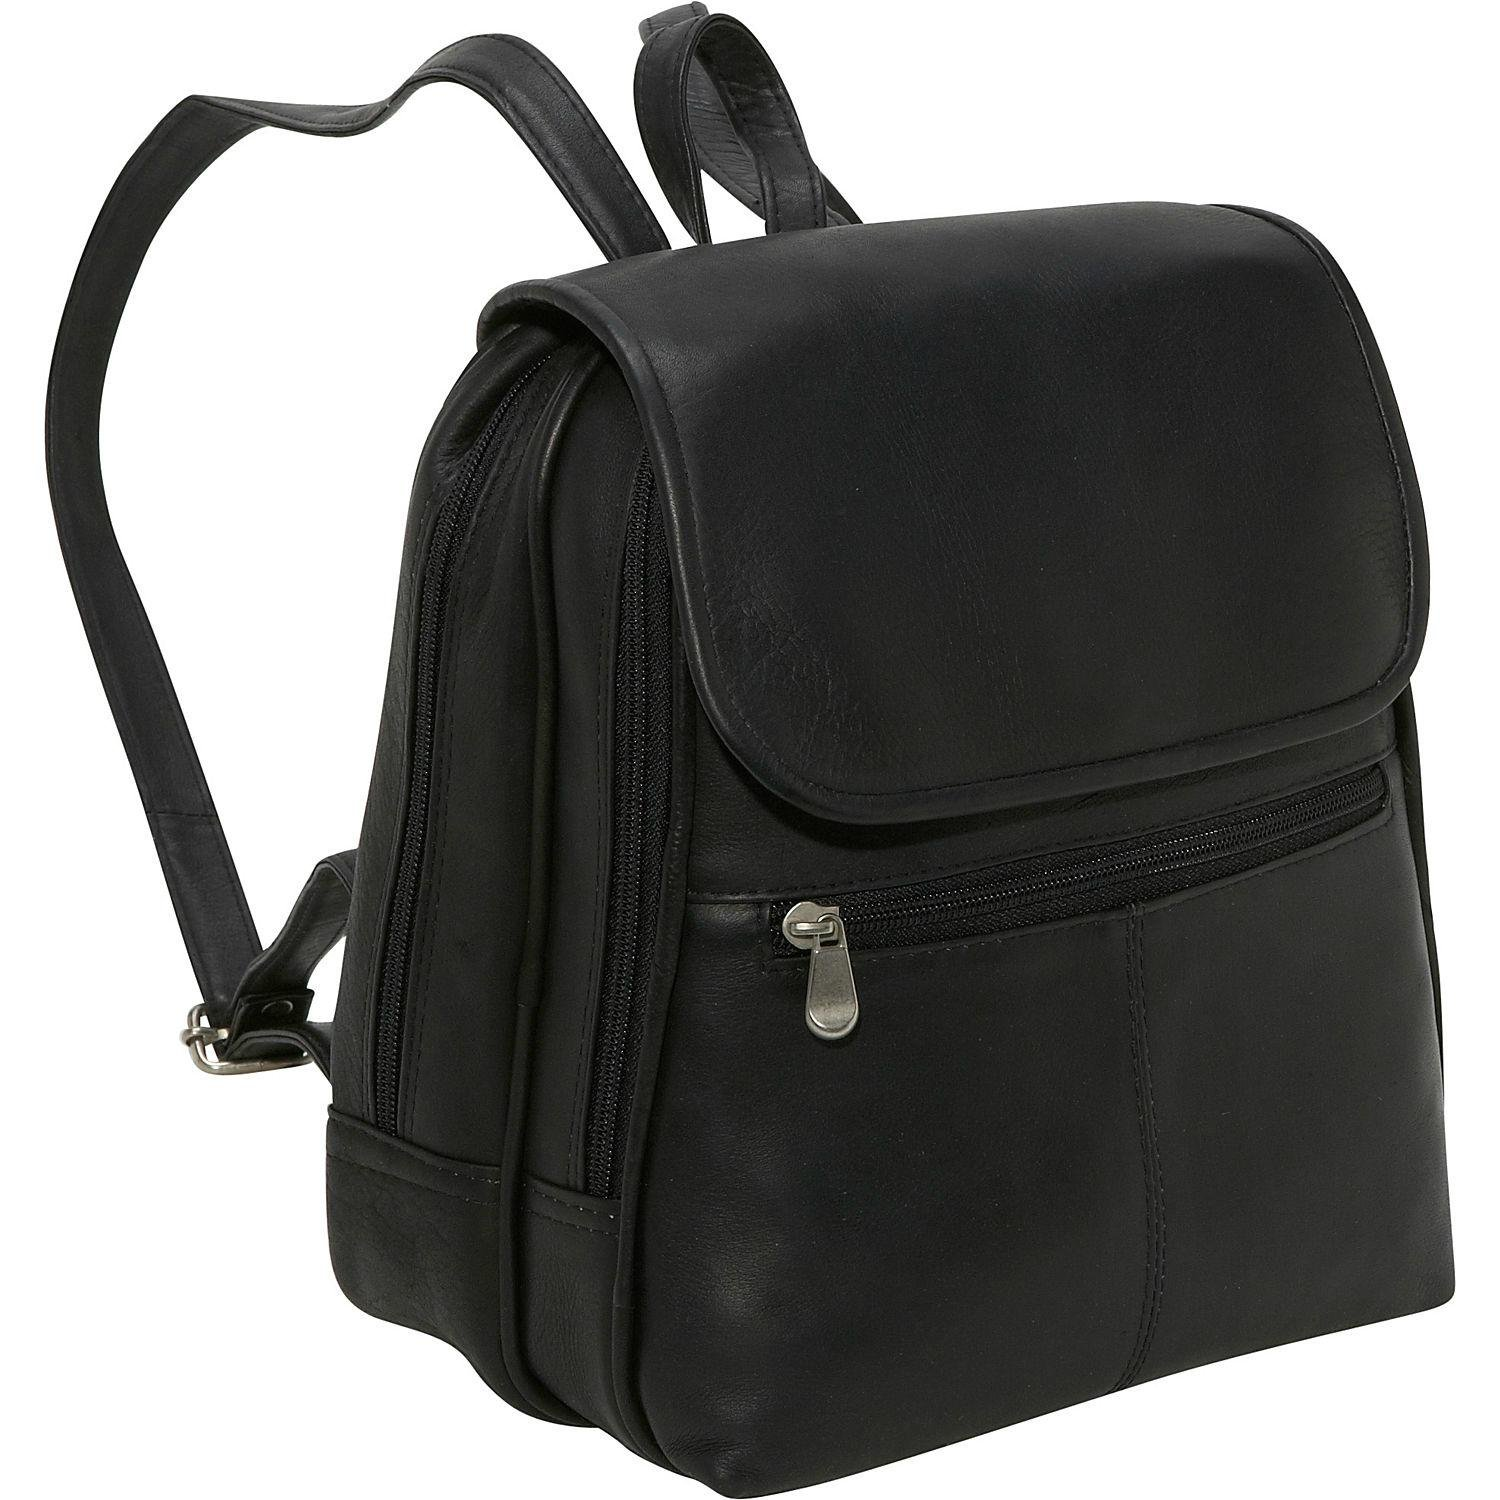 Le Donne Leather Everything Women's Backpack/Purse, One Size, Black by Le Donne Leather